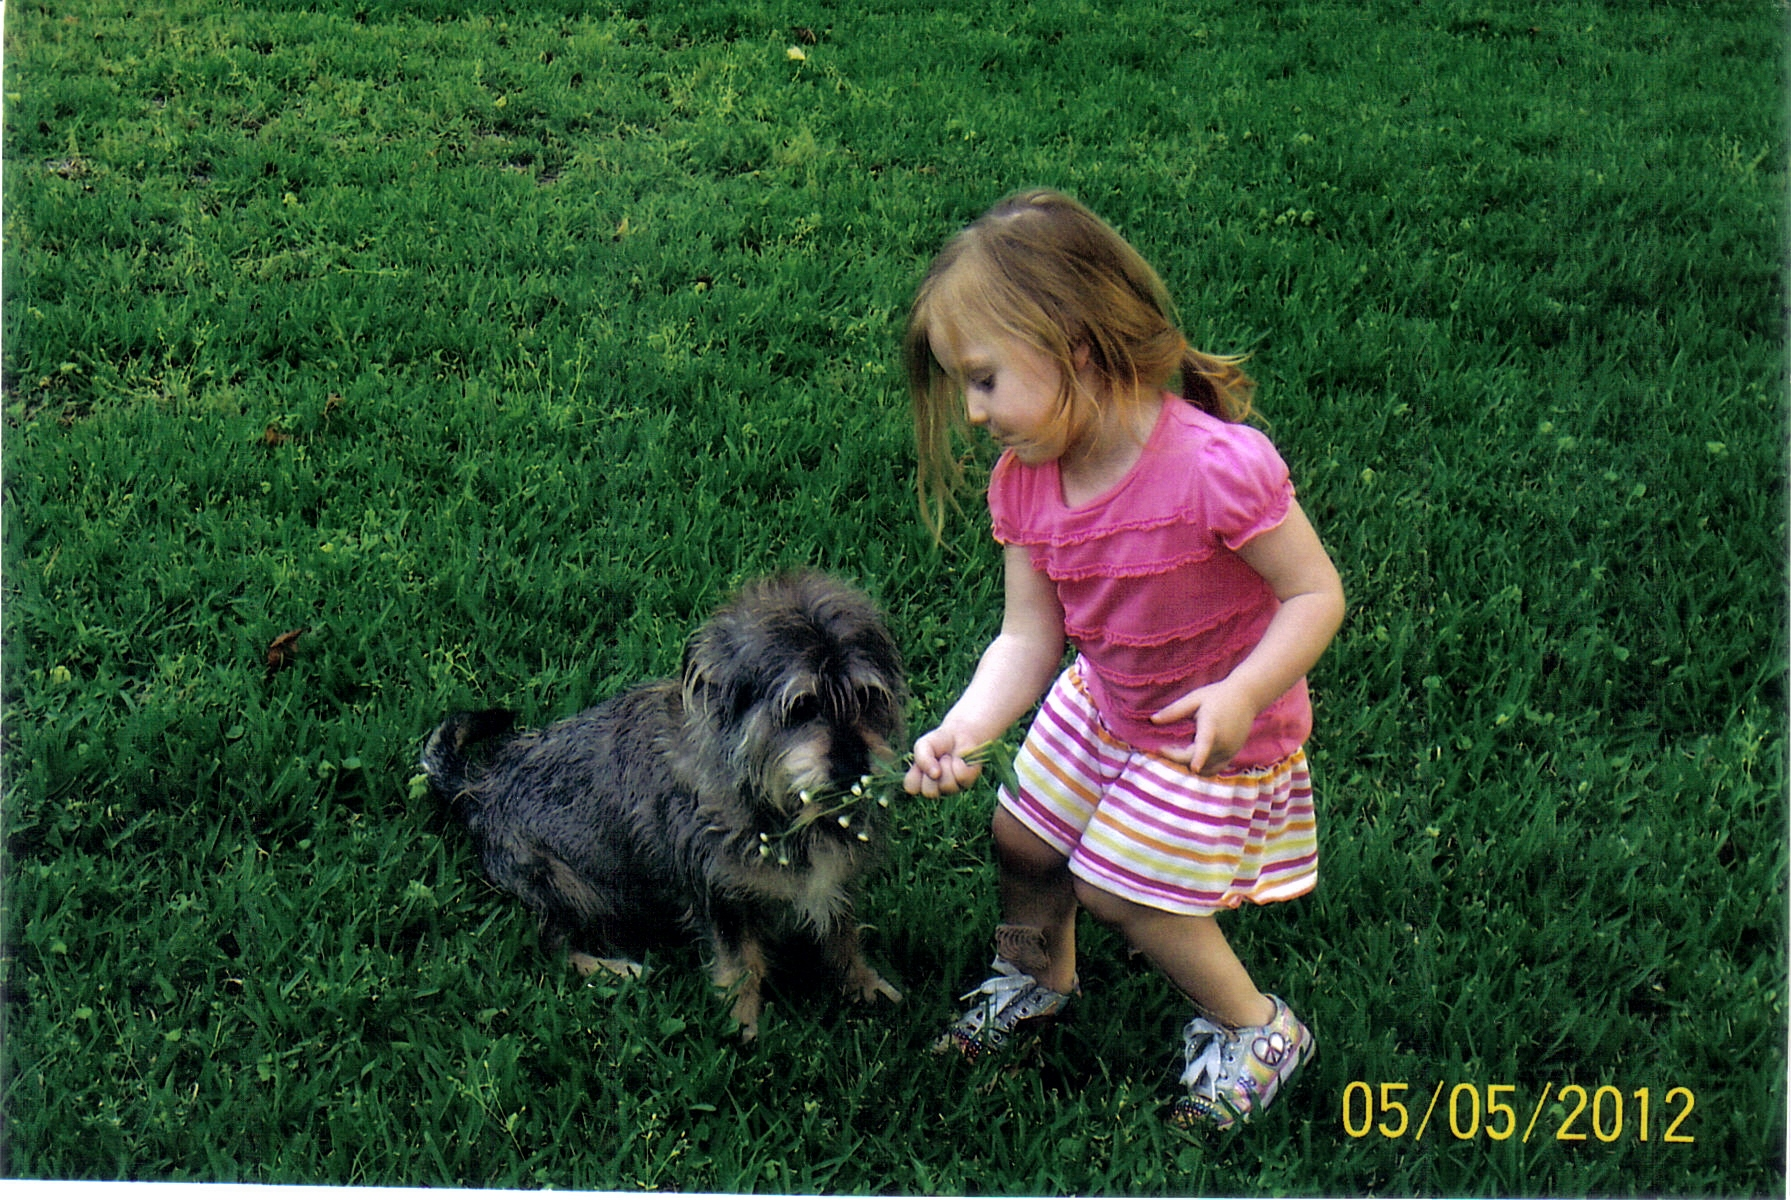 My Granddaughter Sophie sharing flowers with our dog Pepper.